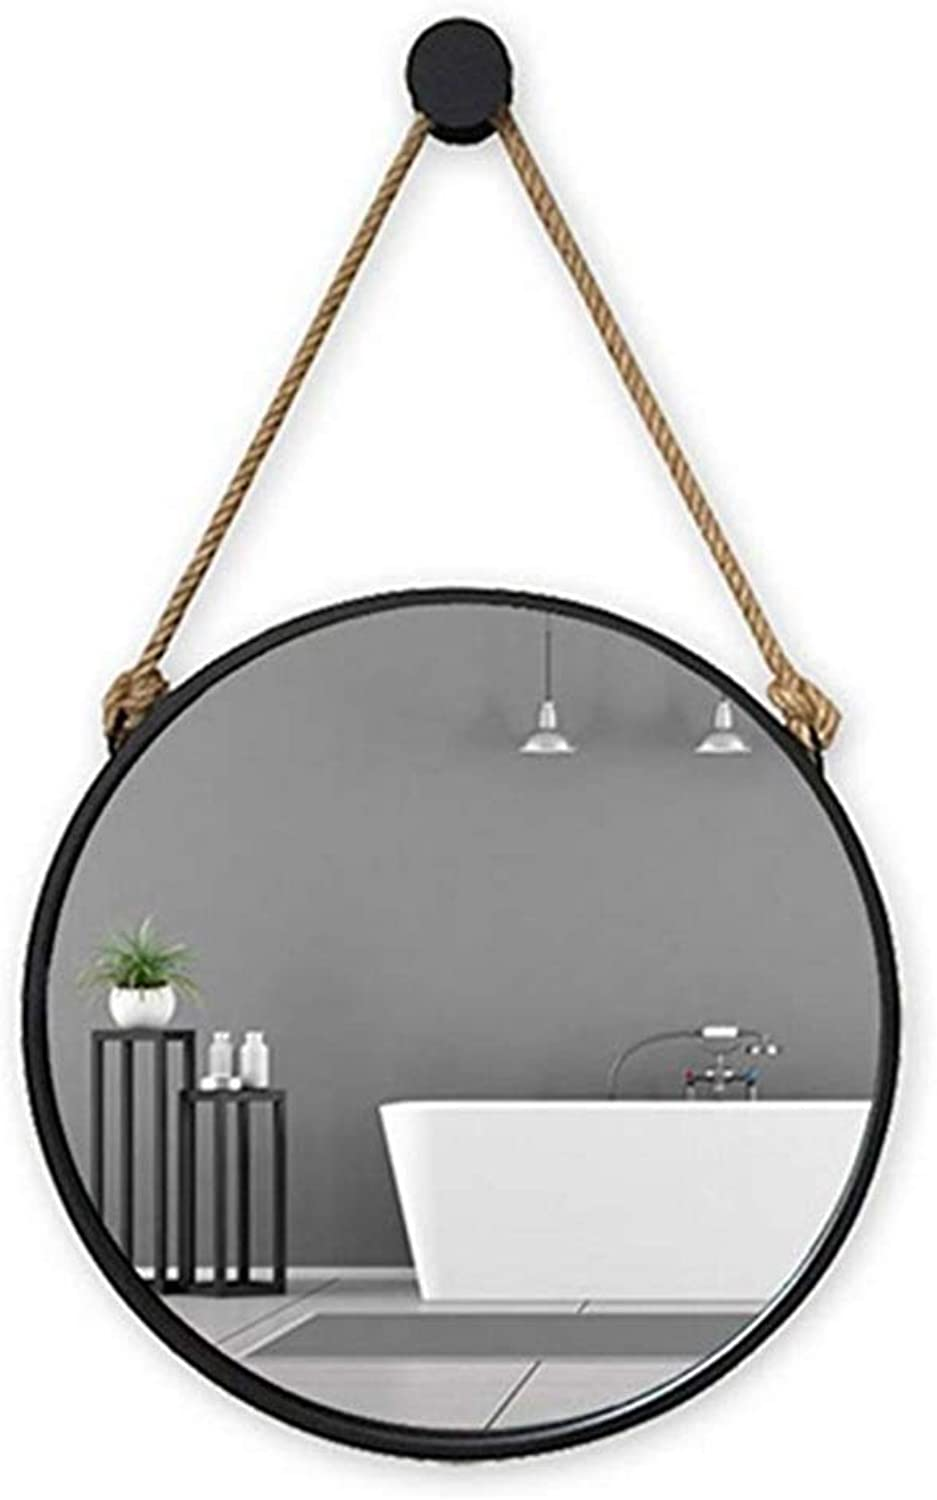 Round Mirror Bathroom Waterproof Mirror Wall Mount Mirror Dressing Table Makeup Mirror (color   Black, Size   30cm)